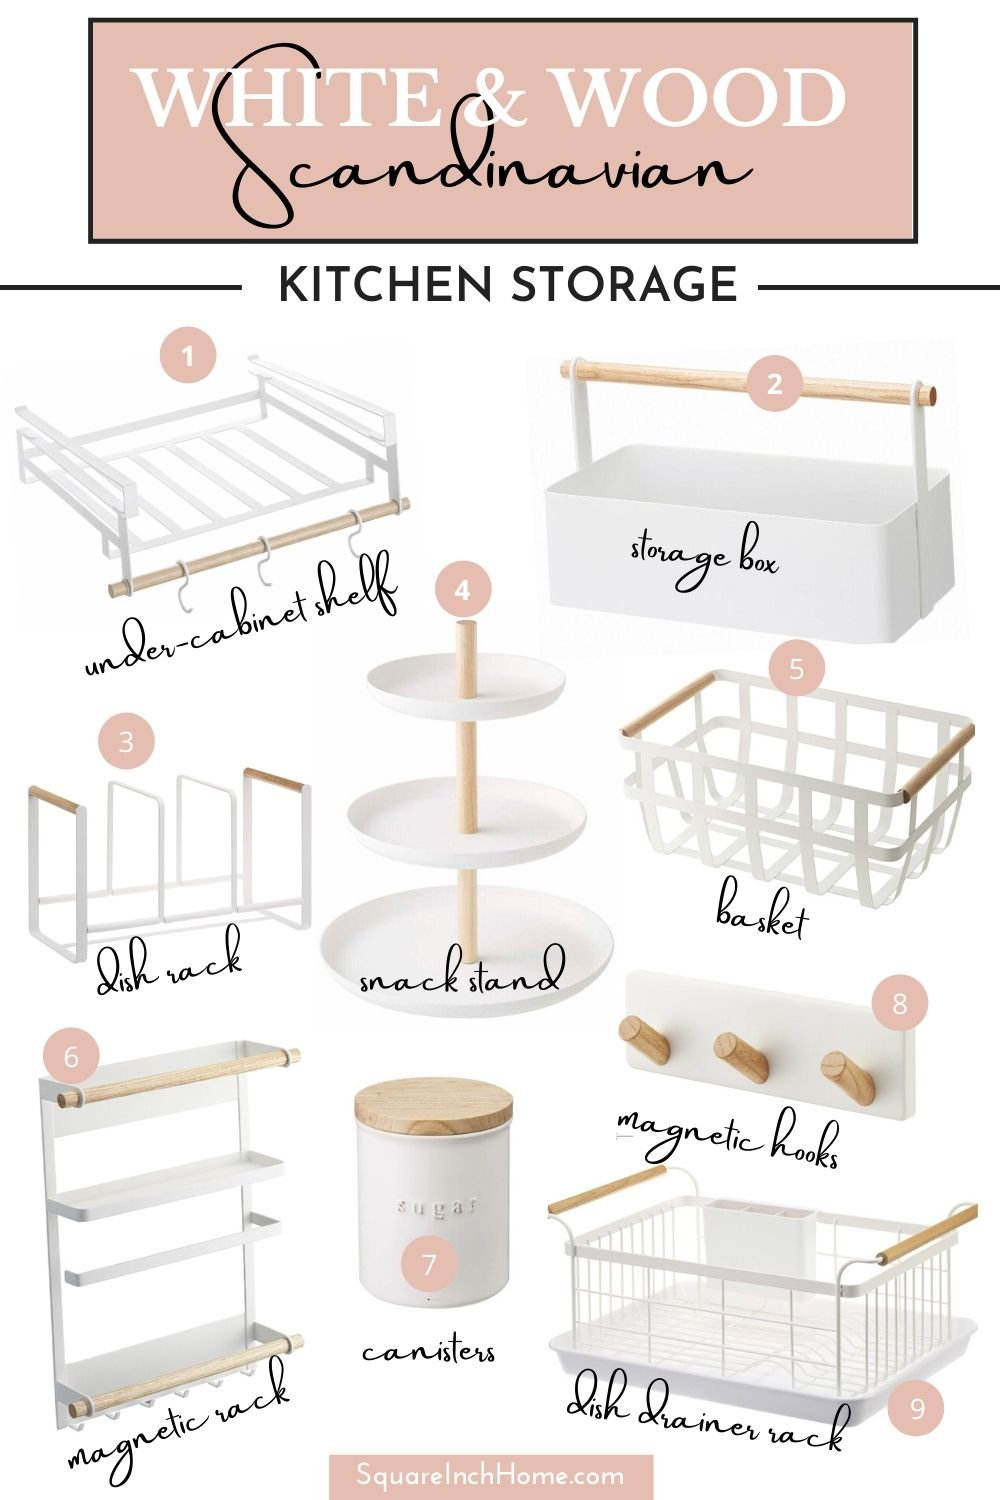 white and wood scandinavian kitchen storage